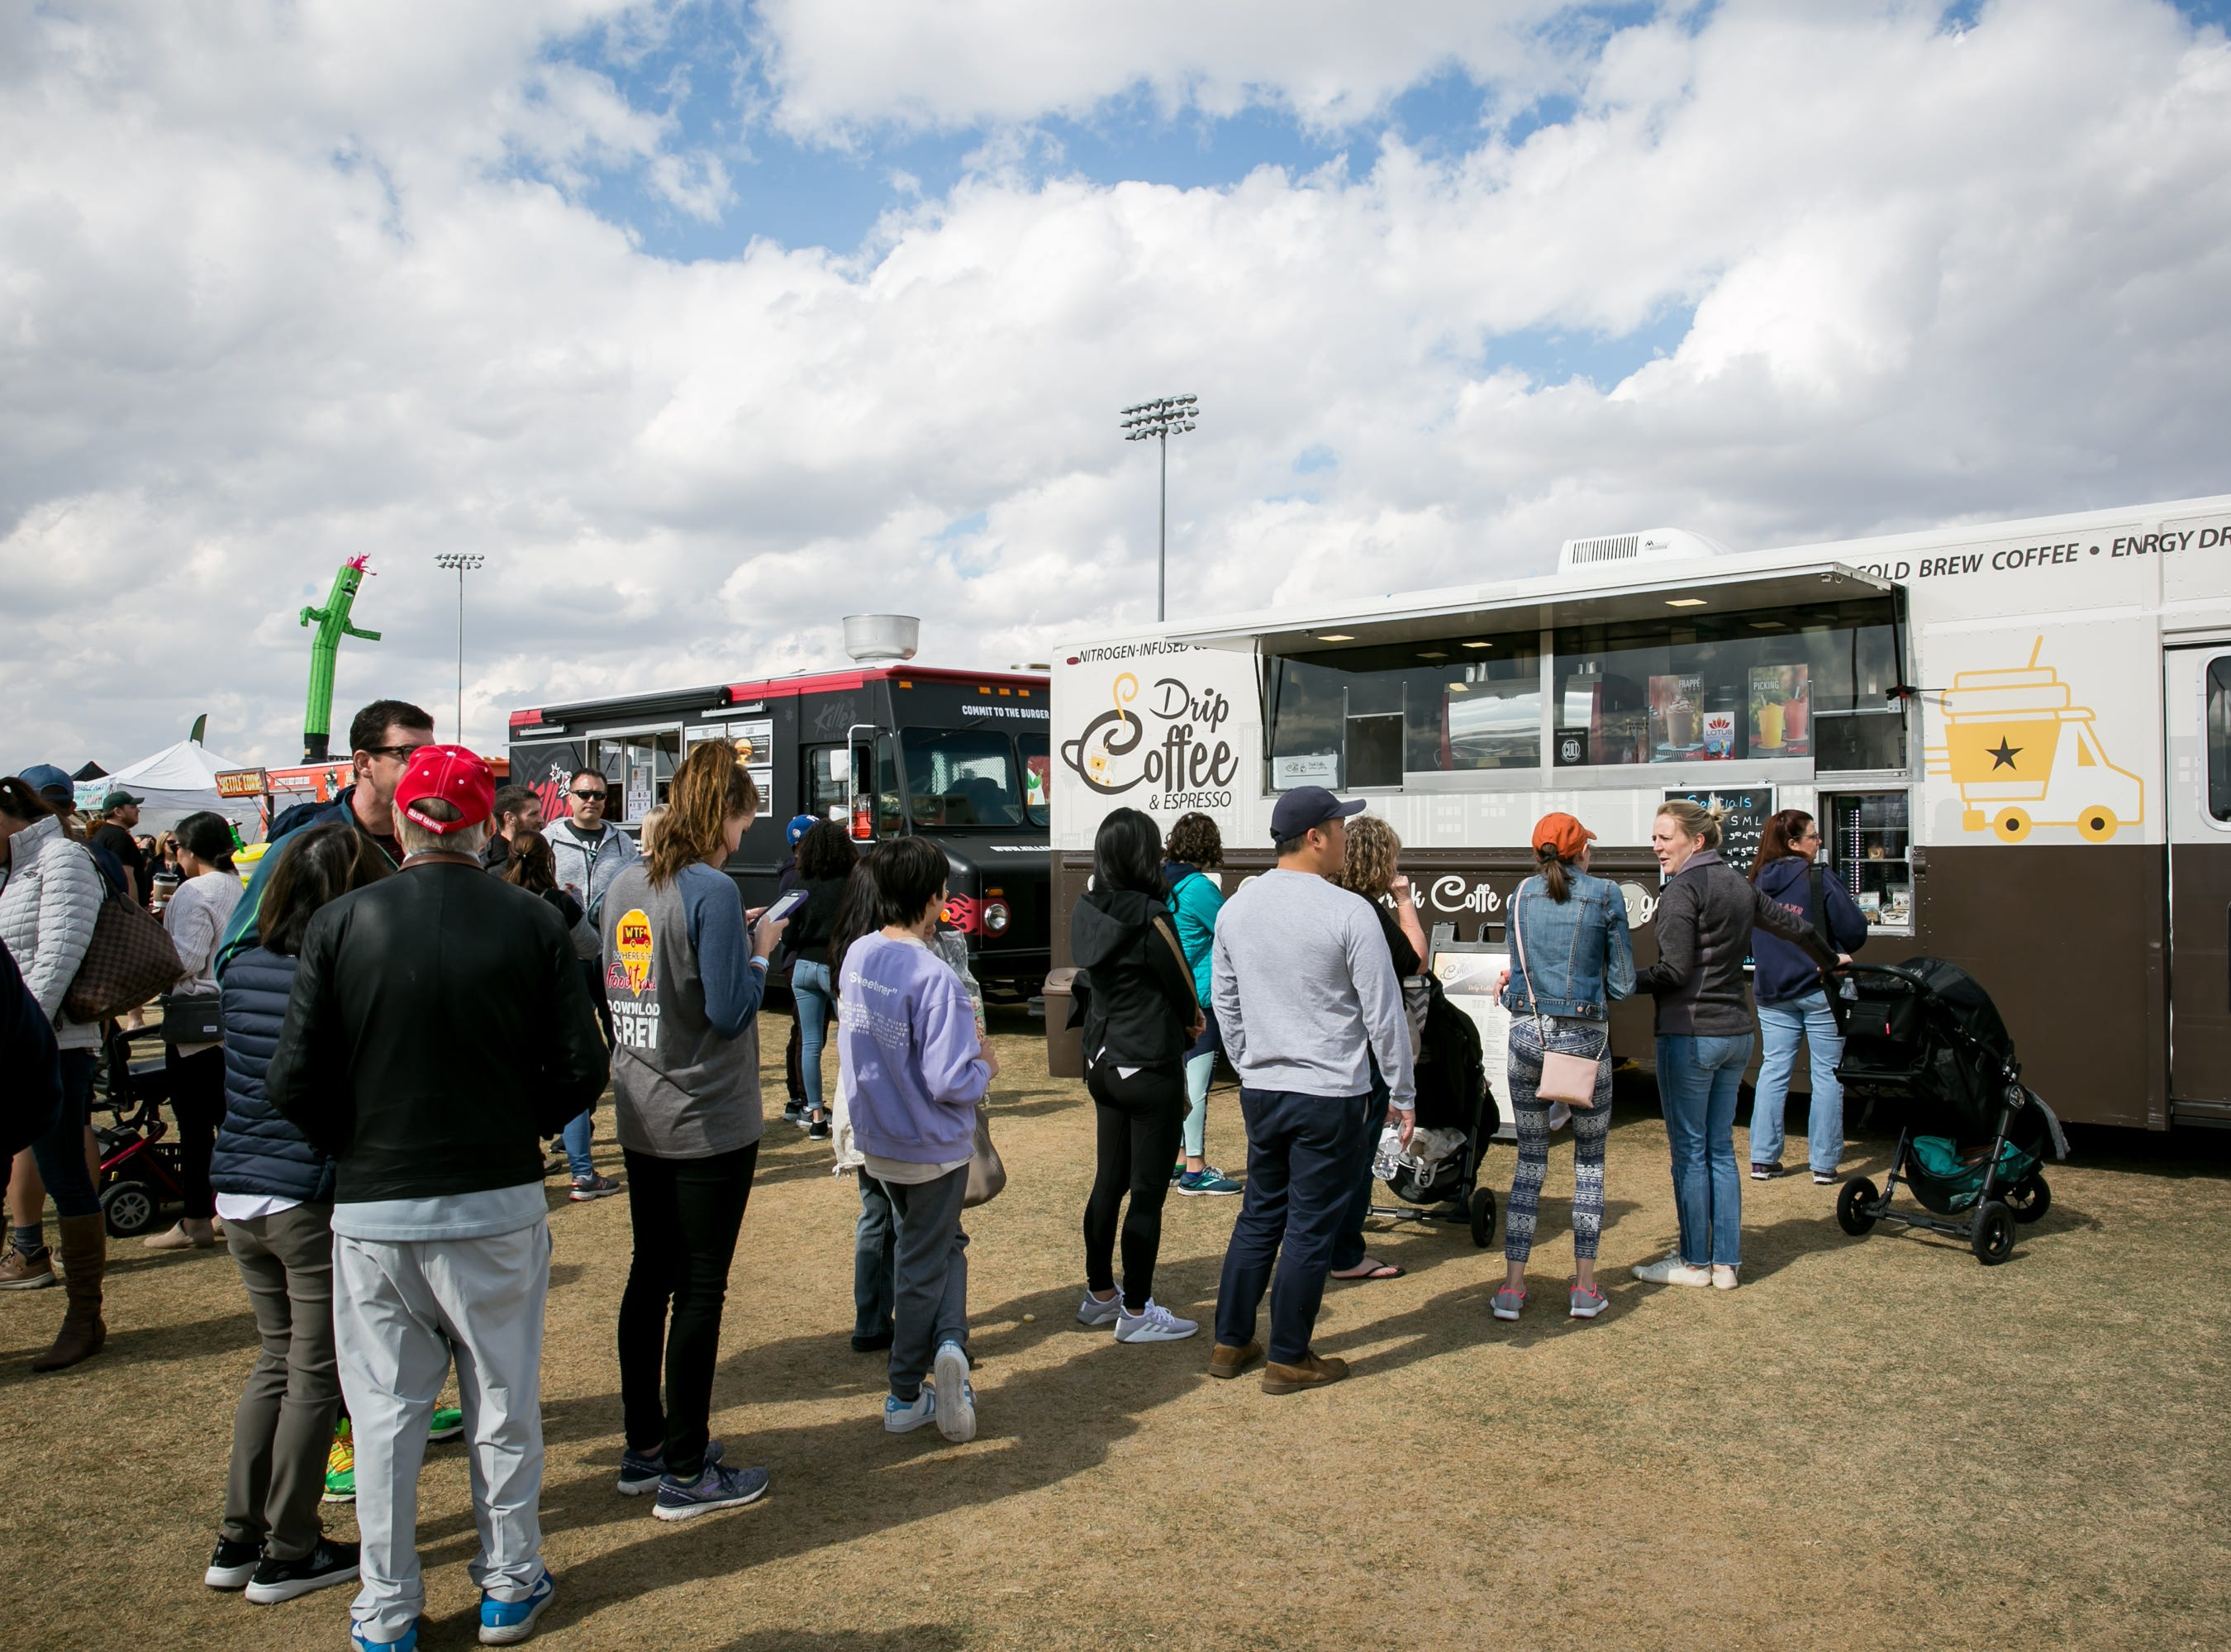 Chilly weather made coffee perfect during the Street Eats Food Truck Festival at Salt River Fields near Scottsdale on Feb. 17, 2019.